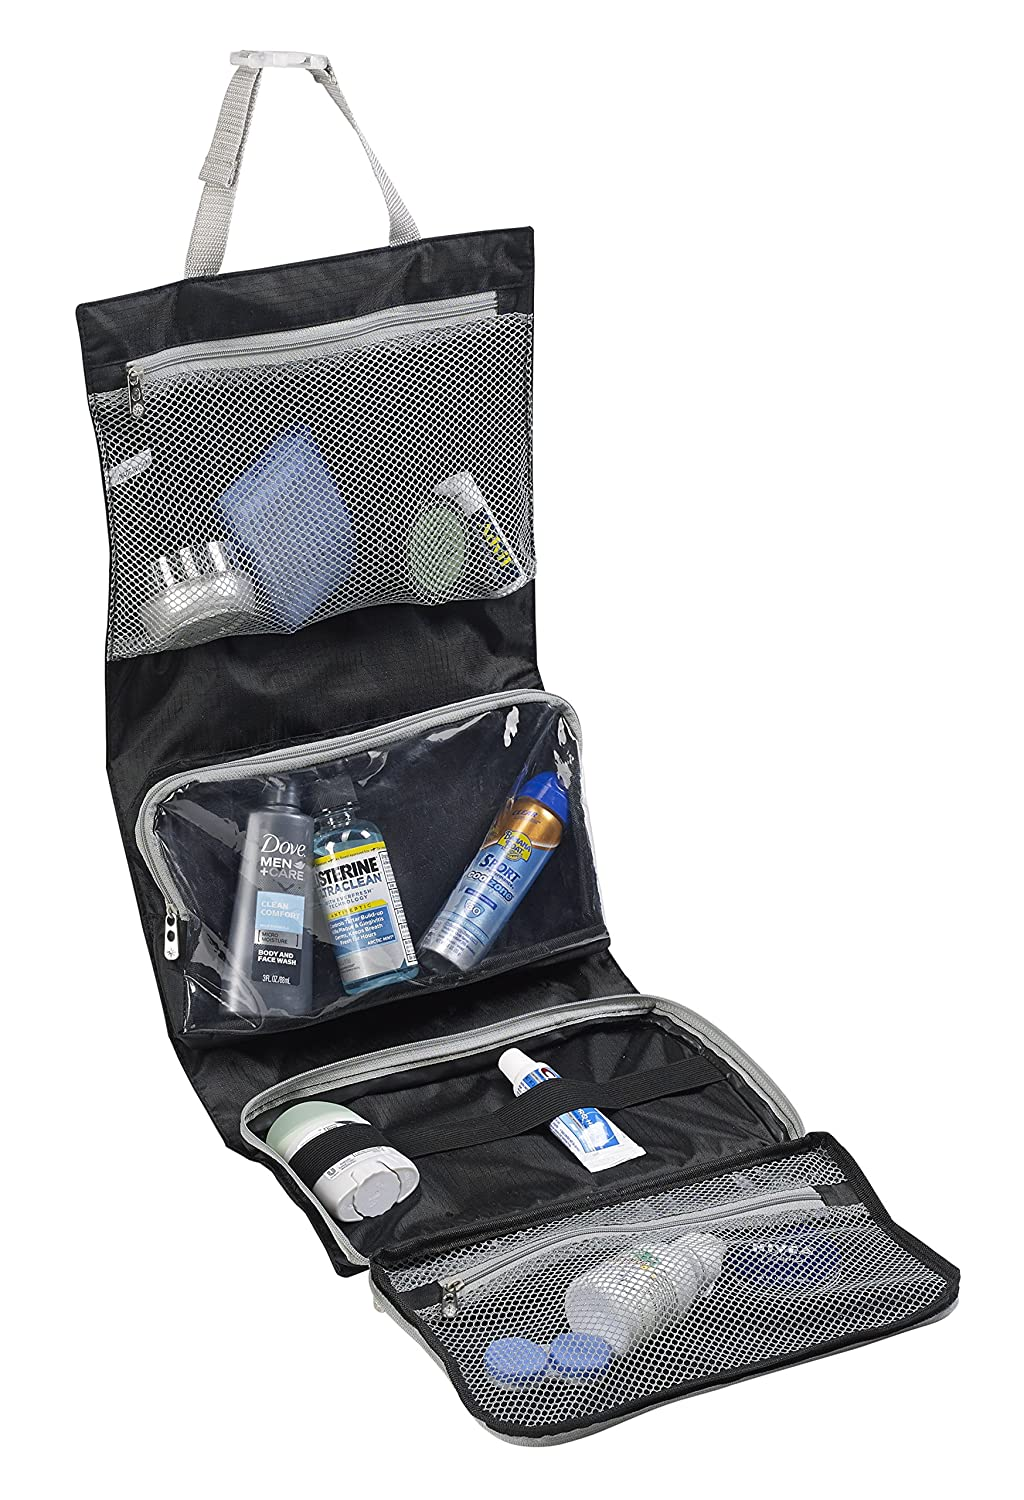 Lewis N Clark Unisex Hanging Toiletry Travel Kit at Amazon.com